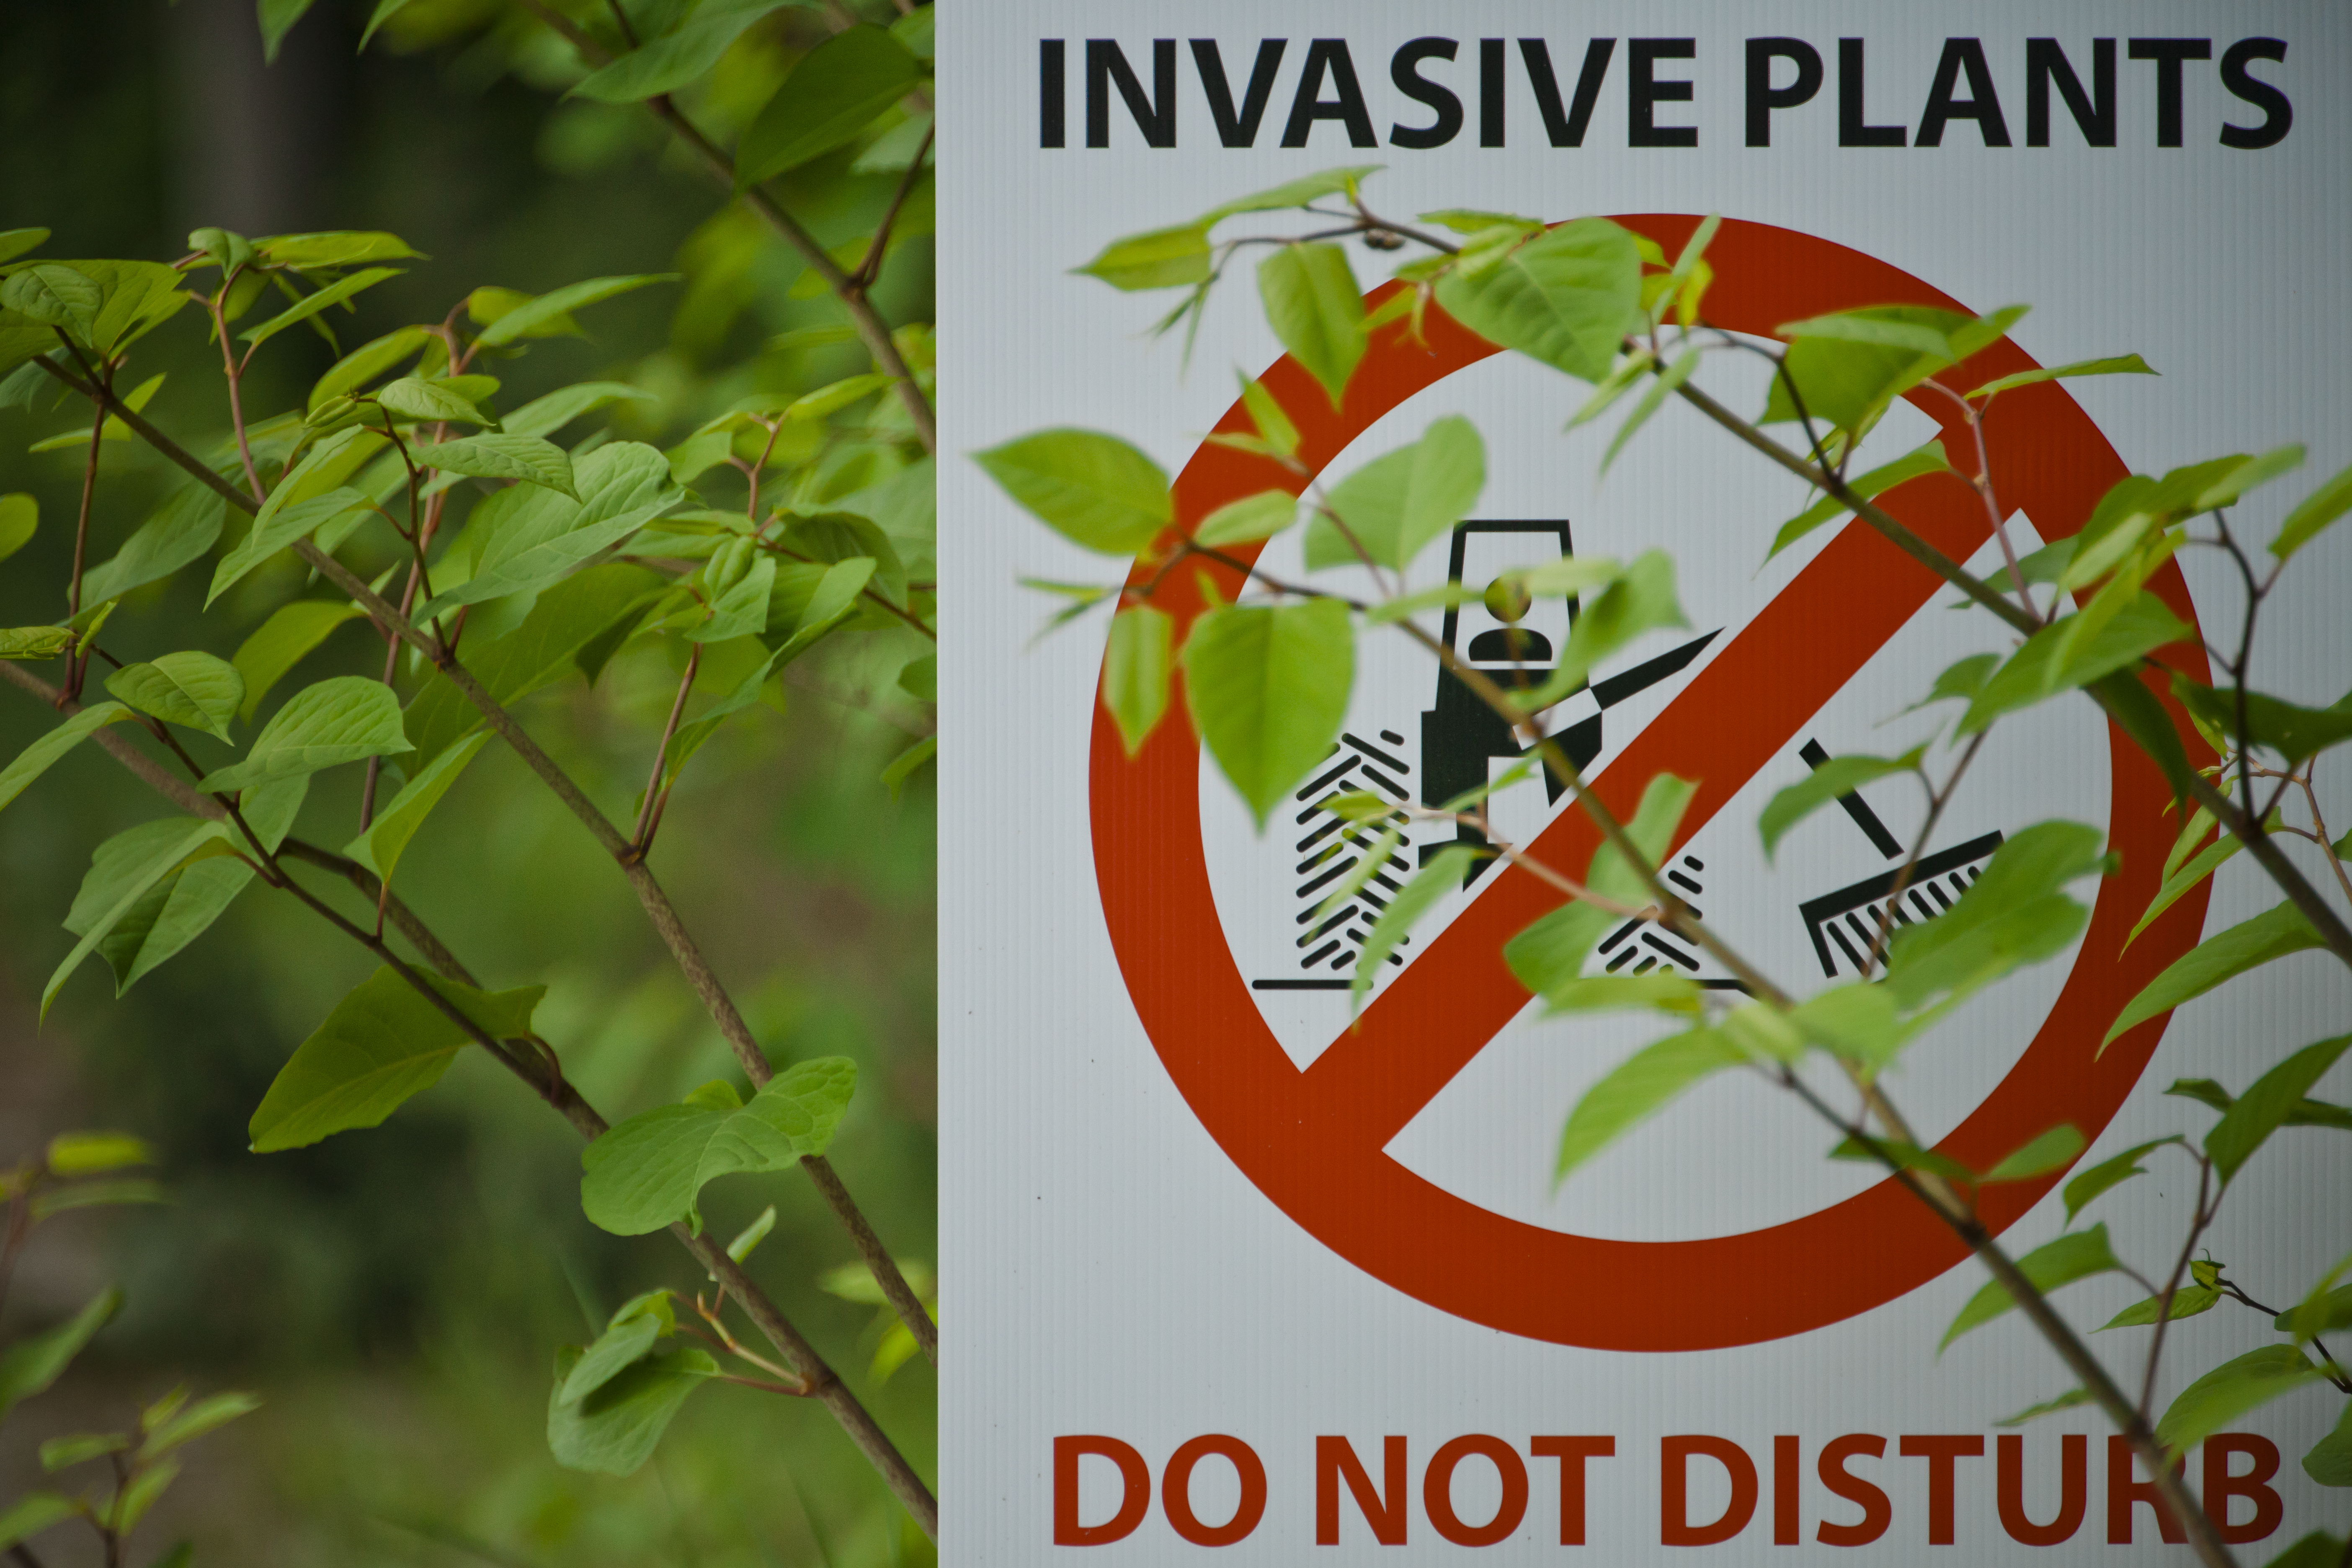 Japanese Knotweed (Fallopia japonica), an agressive invasive species, partially covers an invasive plant sign.